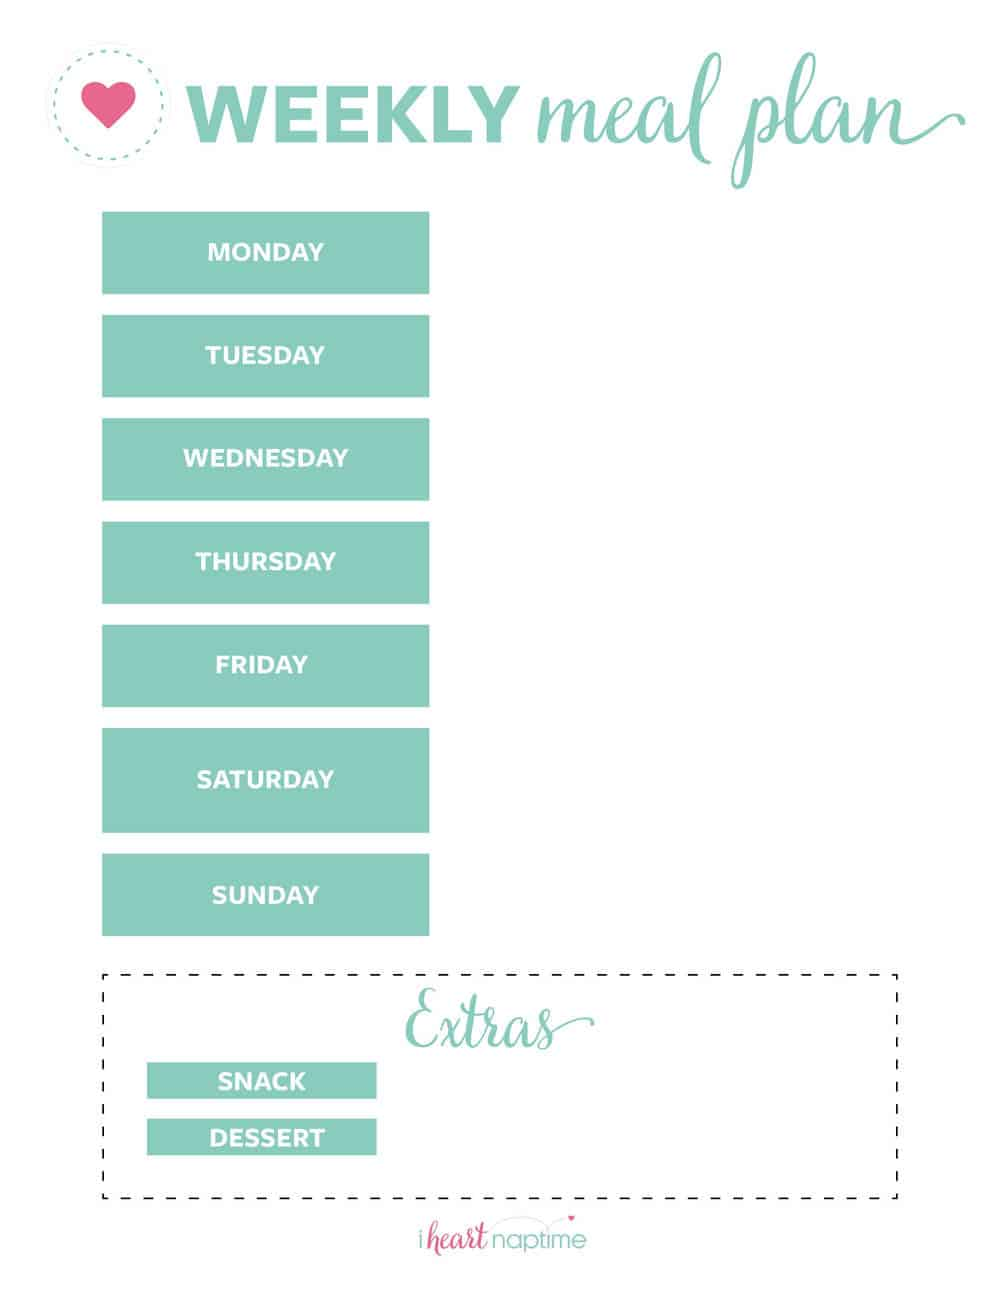 photograph relating to Free Printable Meal Planner Template referred to as Cost-free Printable Weekly Evening meal Software Templates - I Centre Naptime